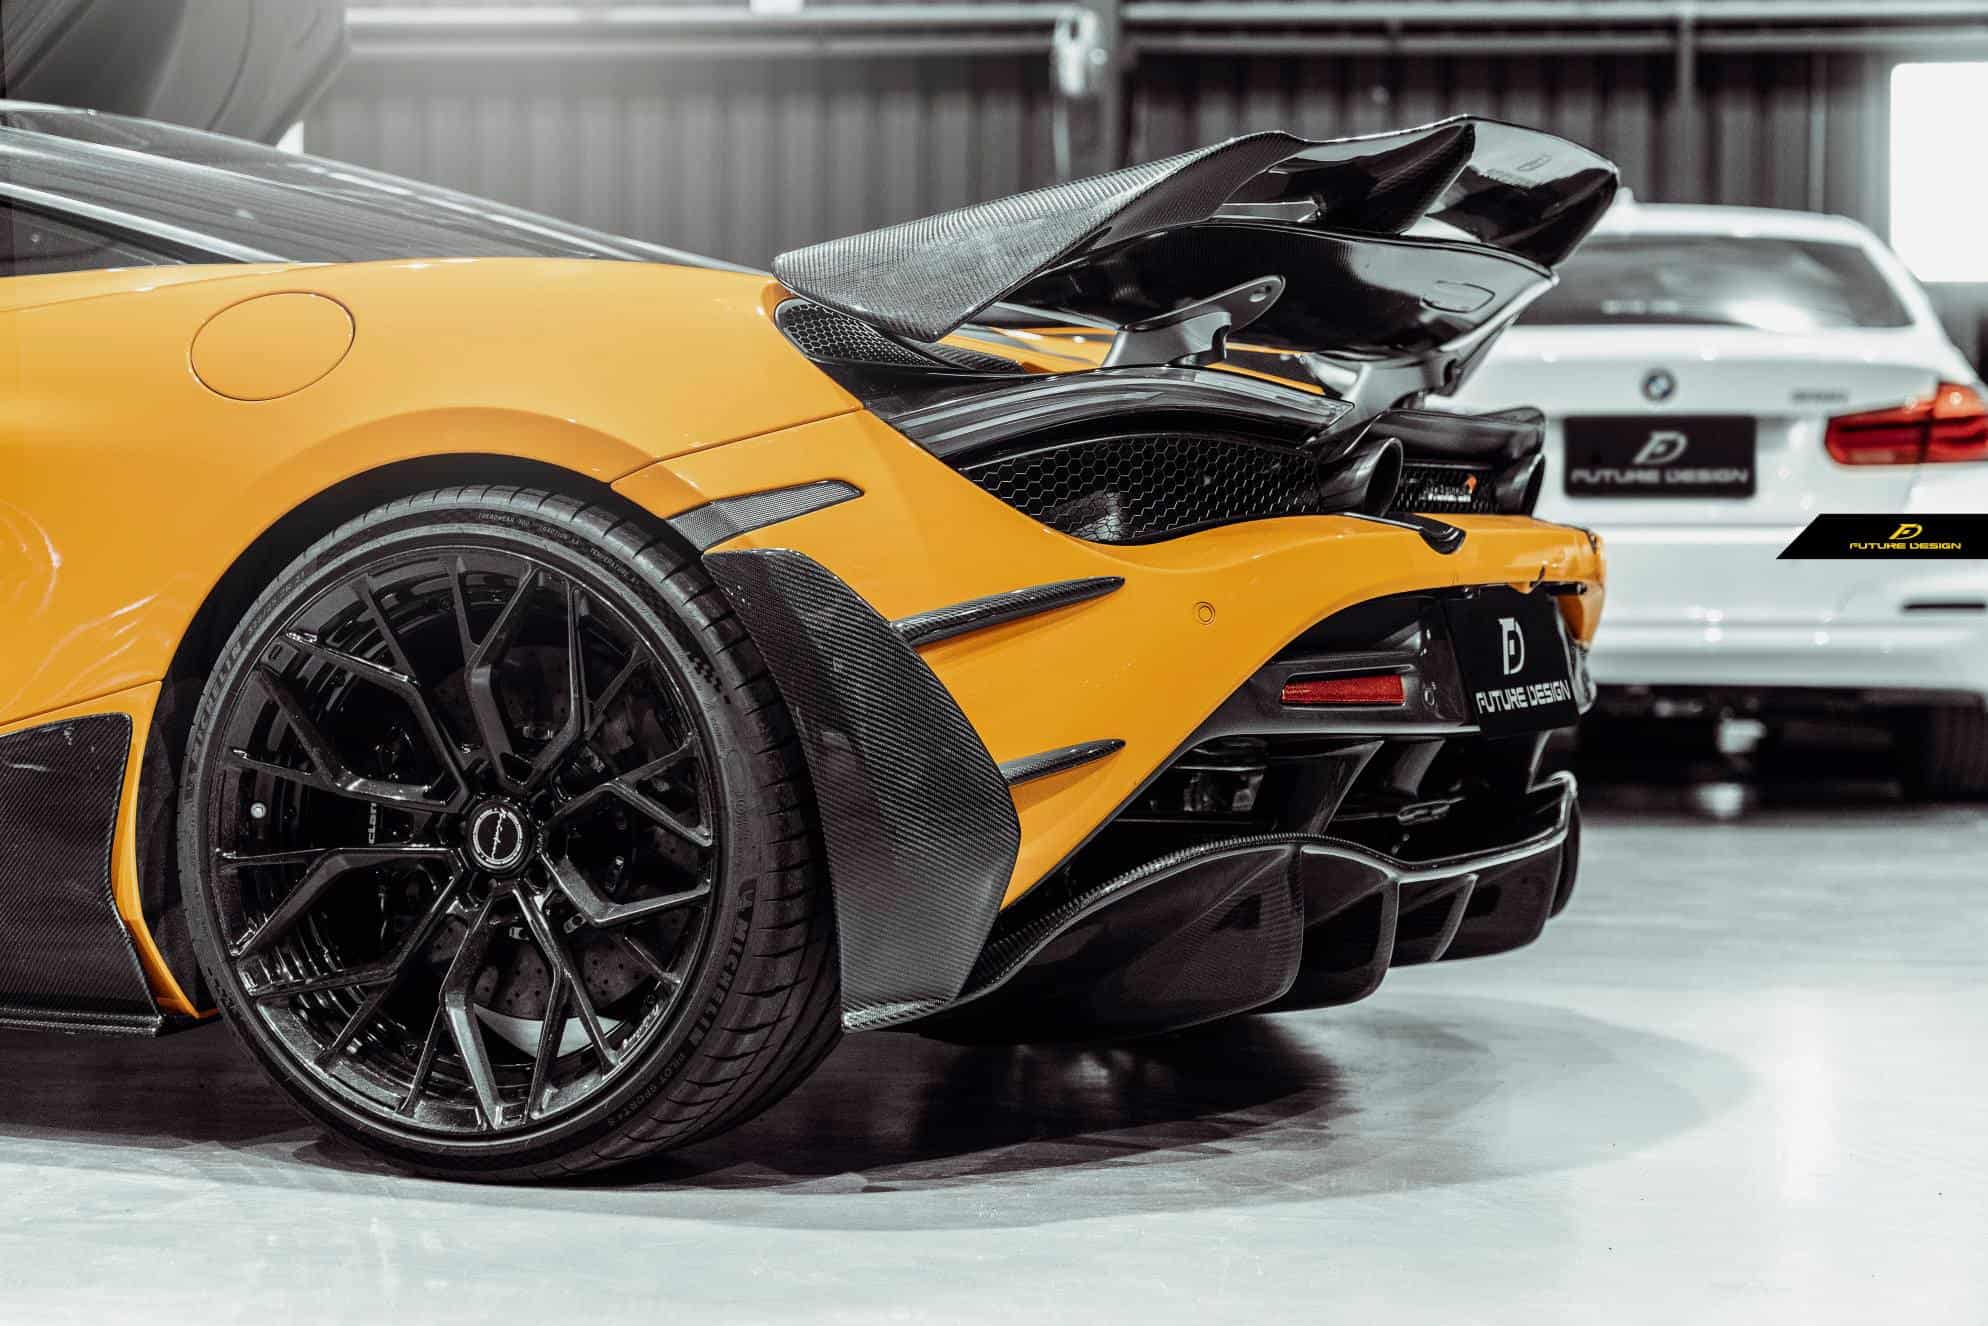 McLaren 720S Future Design body kit Real Killer